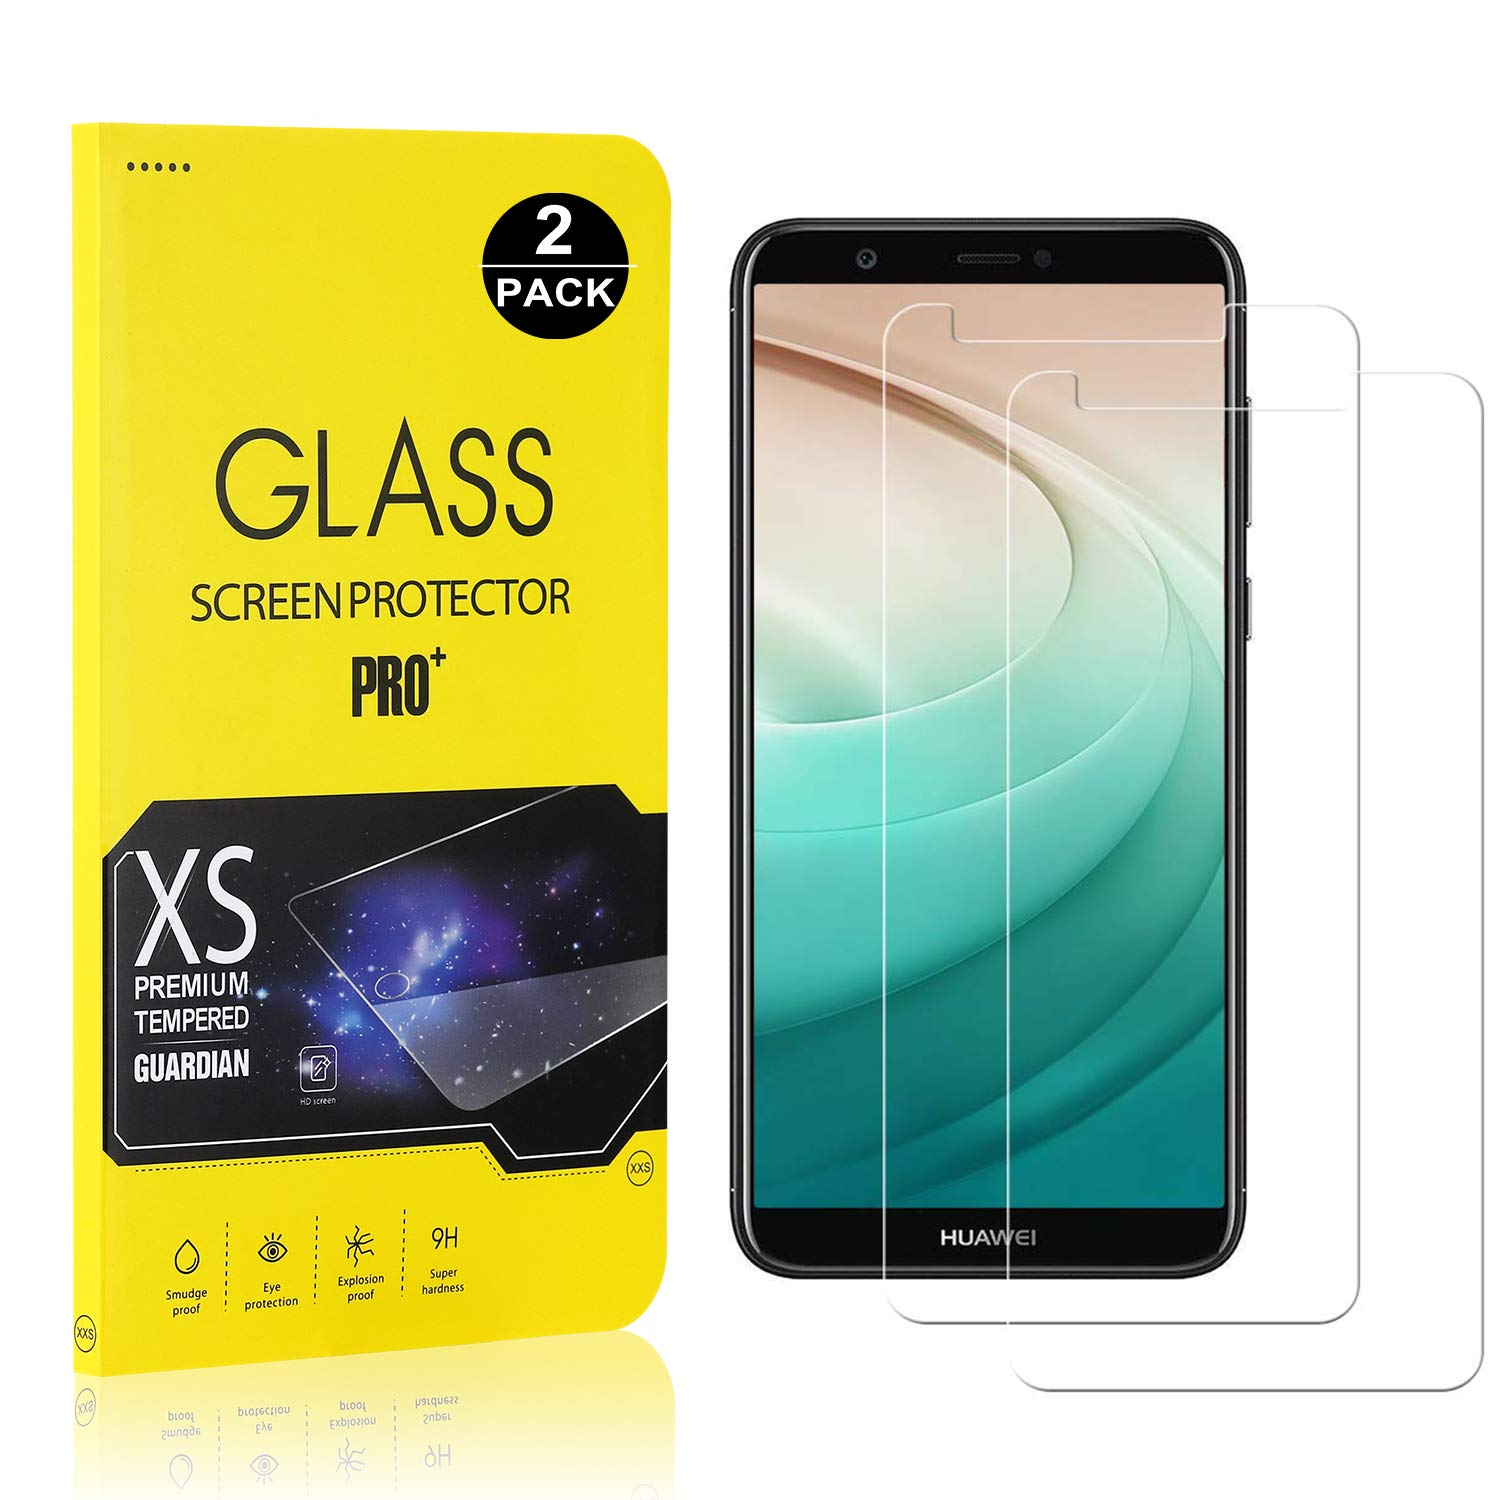 Huawei P Smart/Enjoy 7S Screen Protector, Bear Village® Tempered Glass Screen Protector [Lifetime Warranty], 9H Hardness Screen Protector Film for Huawei P Smart/Enjoy 7S - 2 Pack